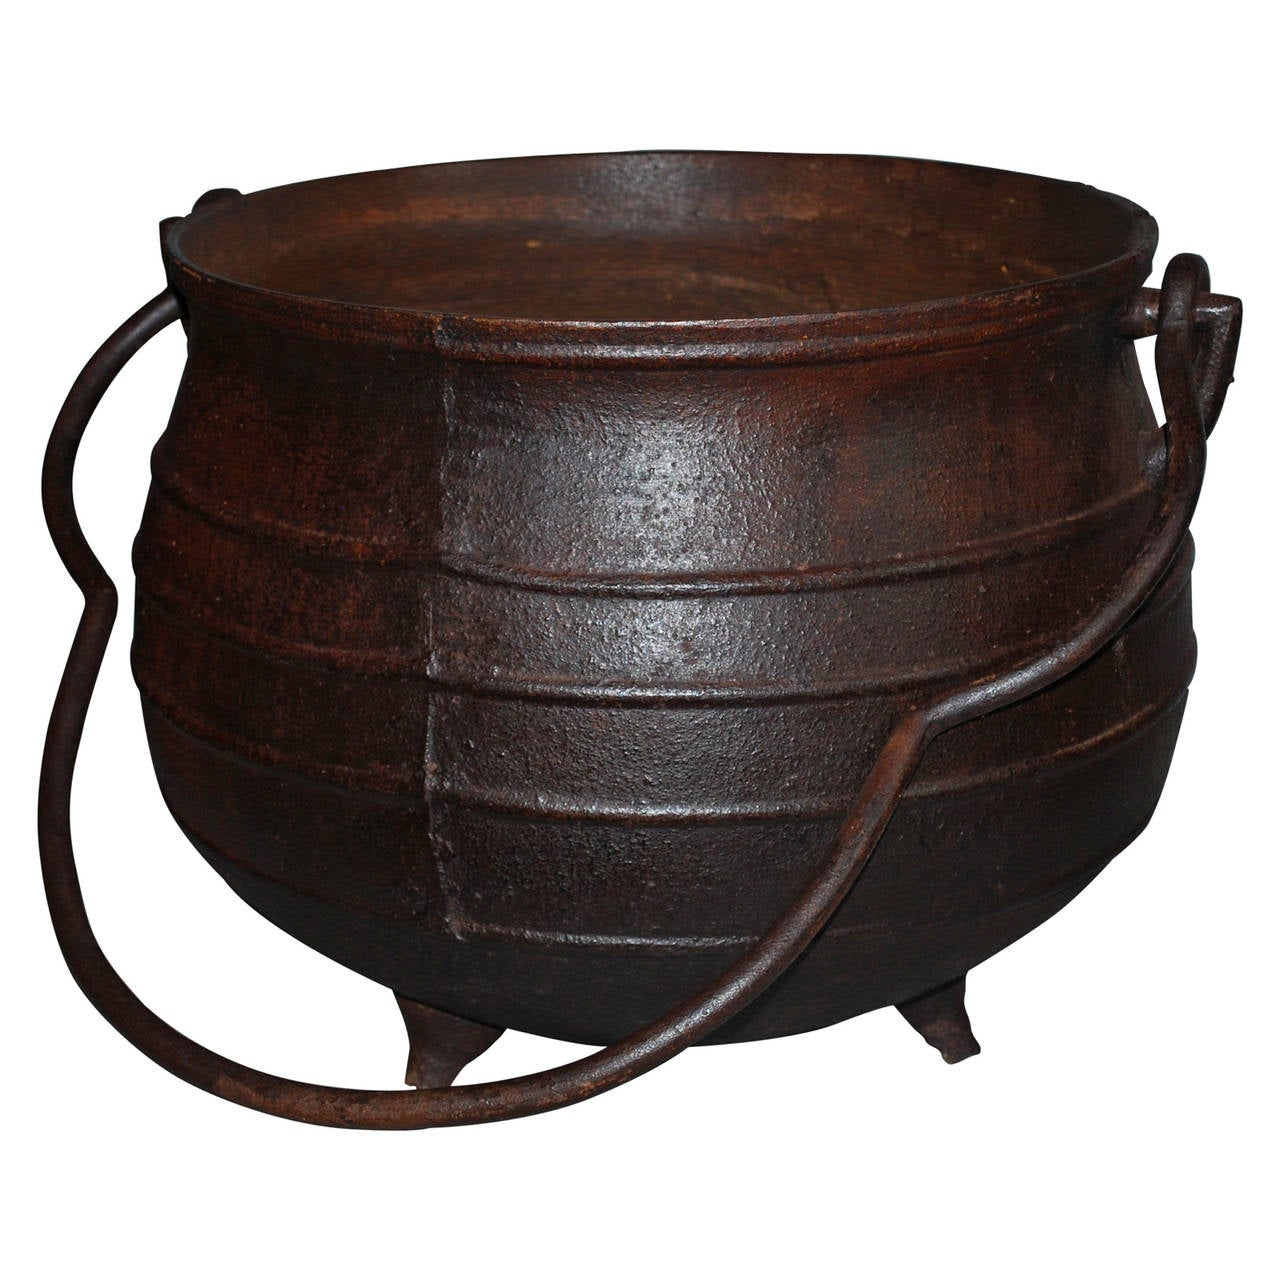 Cast Iron Pot Early 19th Century Cast Iron Pot Or Kettle For Sale At 1stdibs